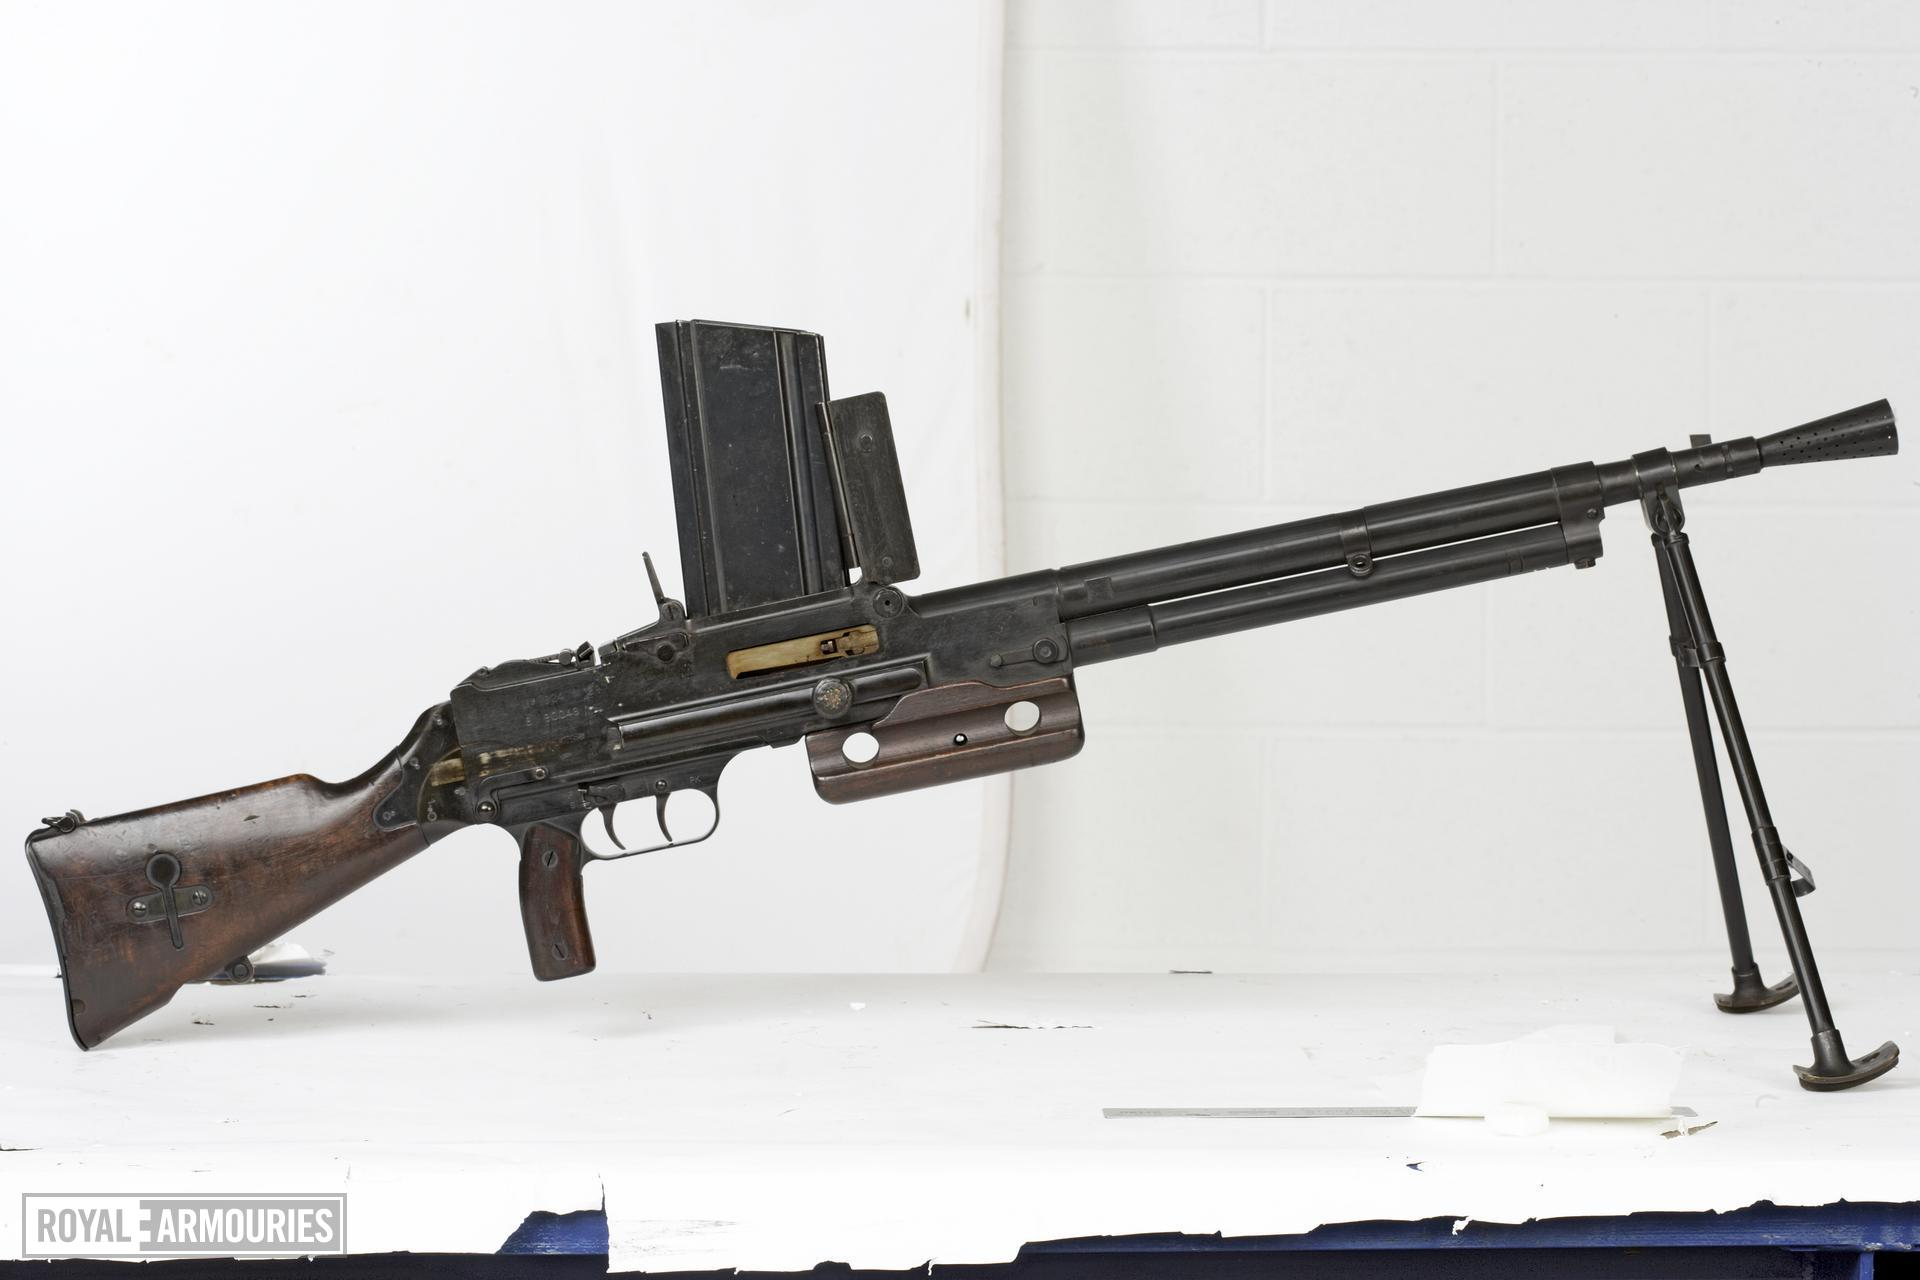 Centrefire automatic light machine gun - Chatellerault Model 1924-M29